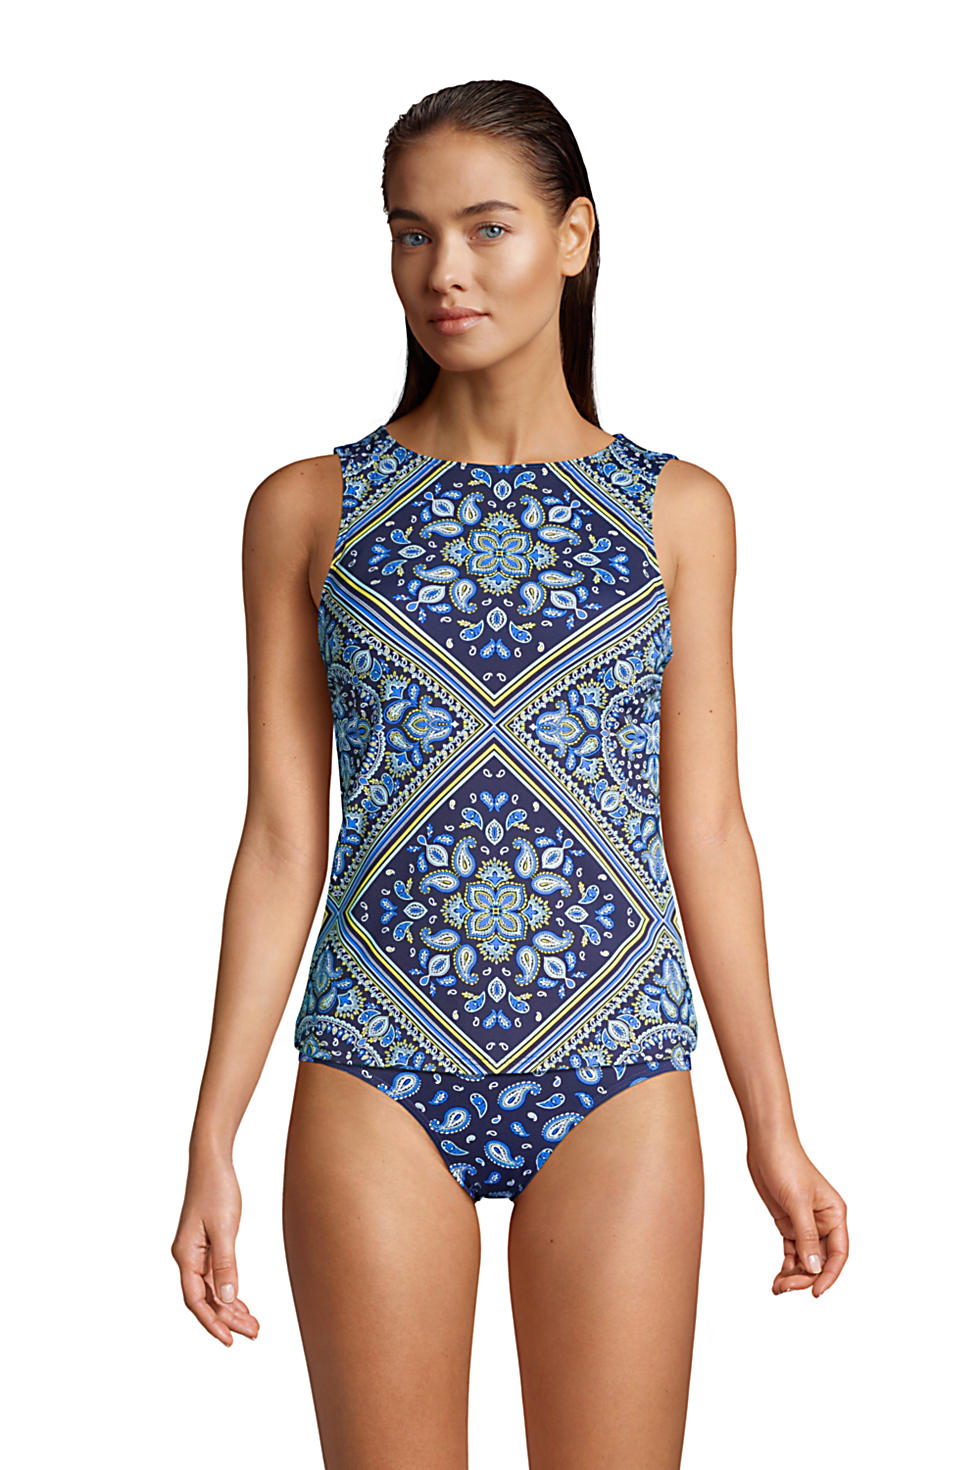 Lands' End Women's Tankini Top in Deep Sea Navy Square Paisley